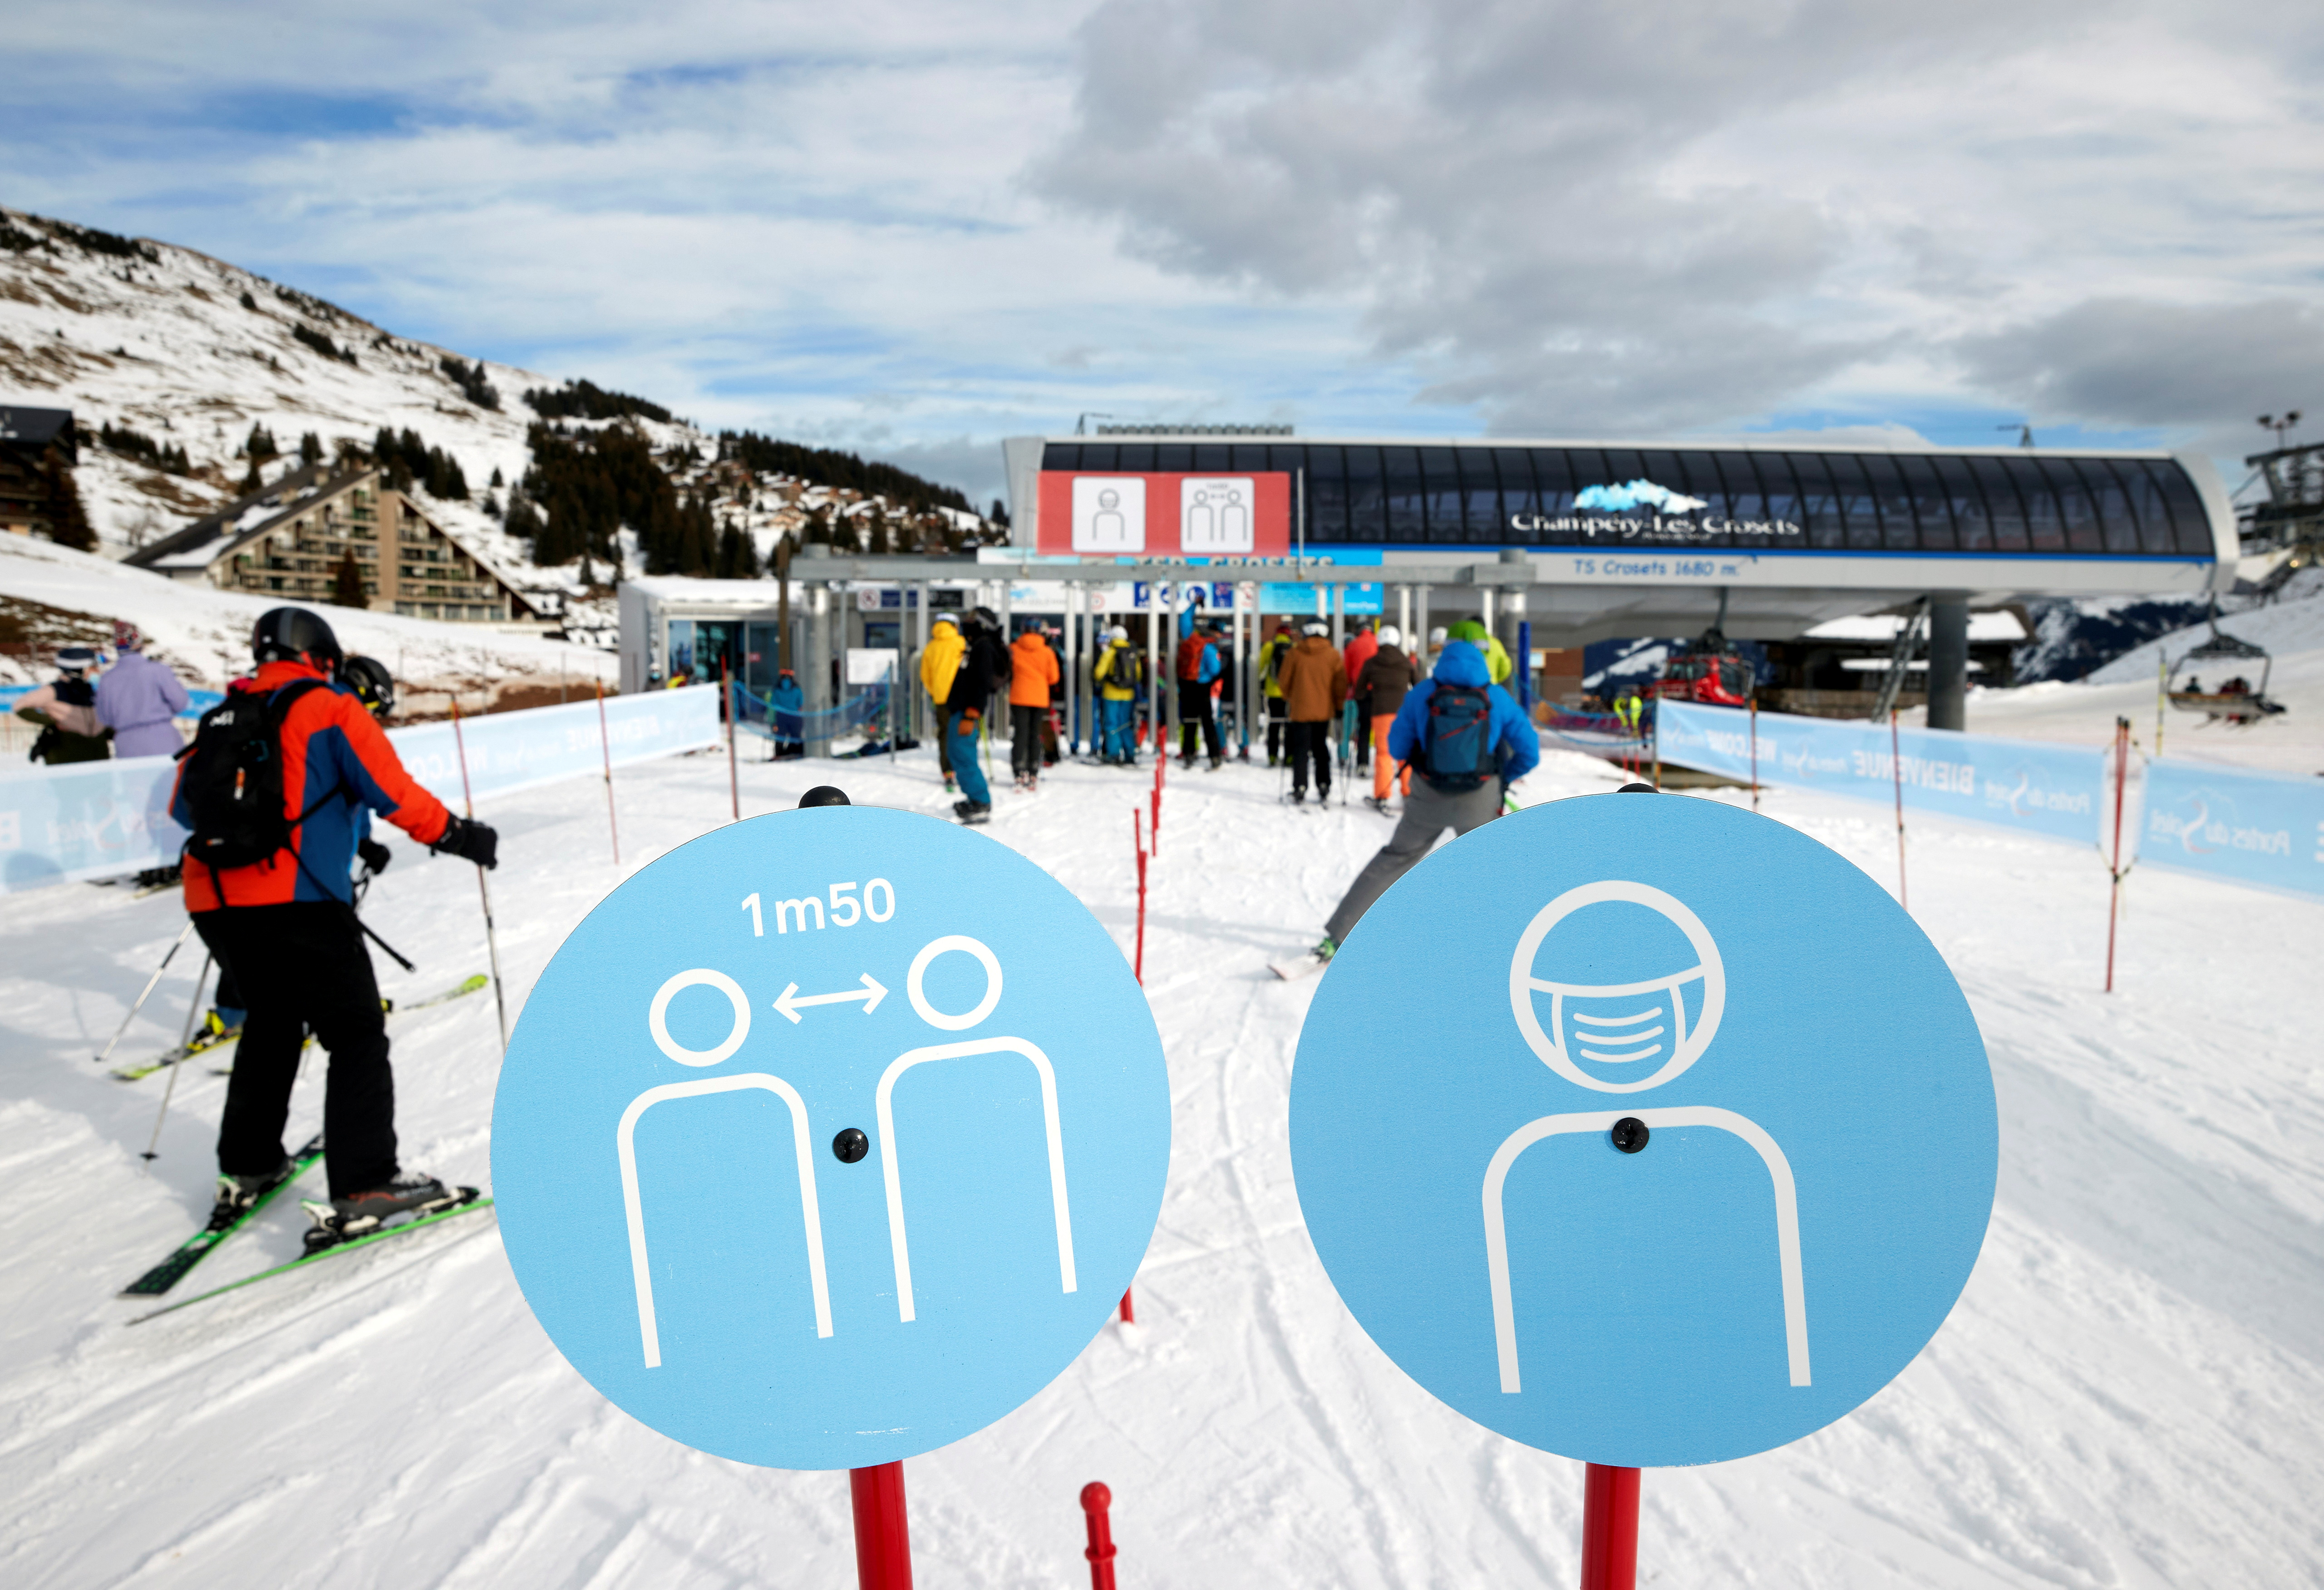 Skiers pass the restriction signs to line up at the chairlift at Les Portes du Soleil ski resort during the global outbreak of the coronavirus disease (COVID-19), in Les Crosets, Switzerland, December 19, 2020. REUTERS/Denis Balibouse